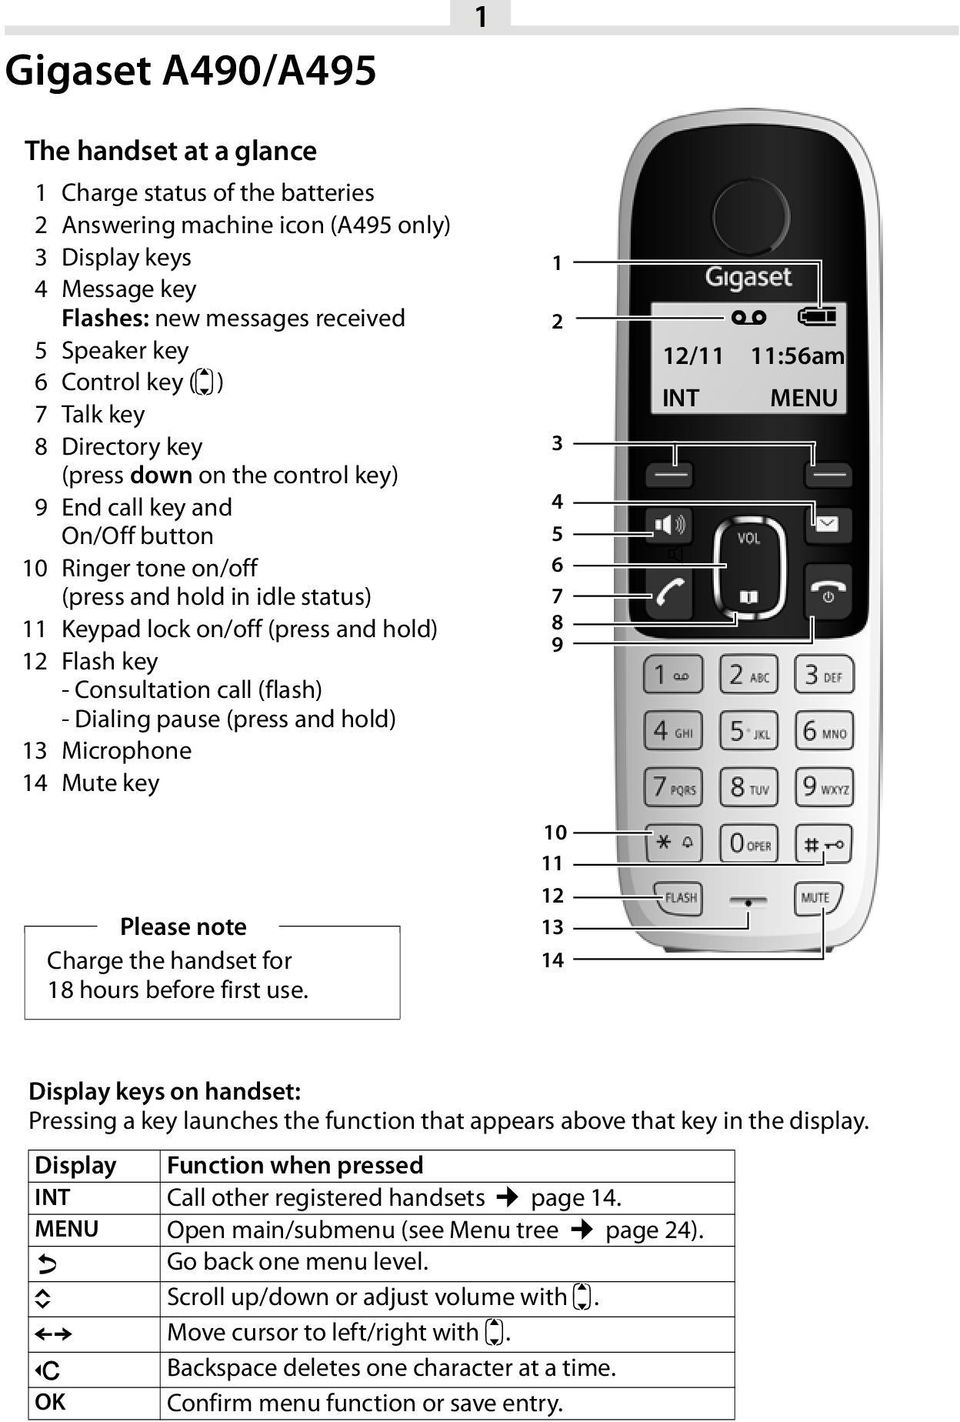 Flash key - Consultation call (flash) - Dialing pause (press and hold) 13 Microphone 14 Mute key Please note Charge the handset for 18 hours before first use.